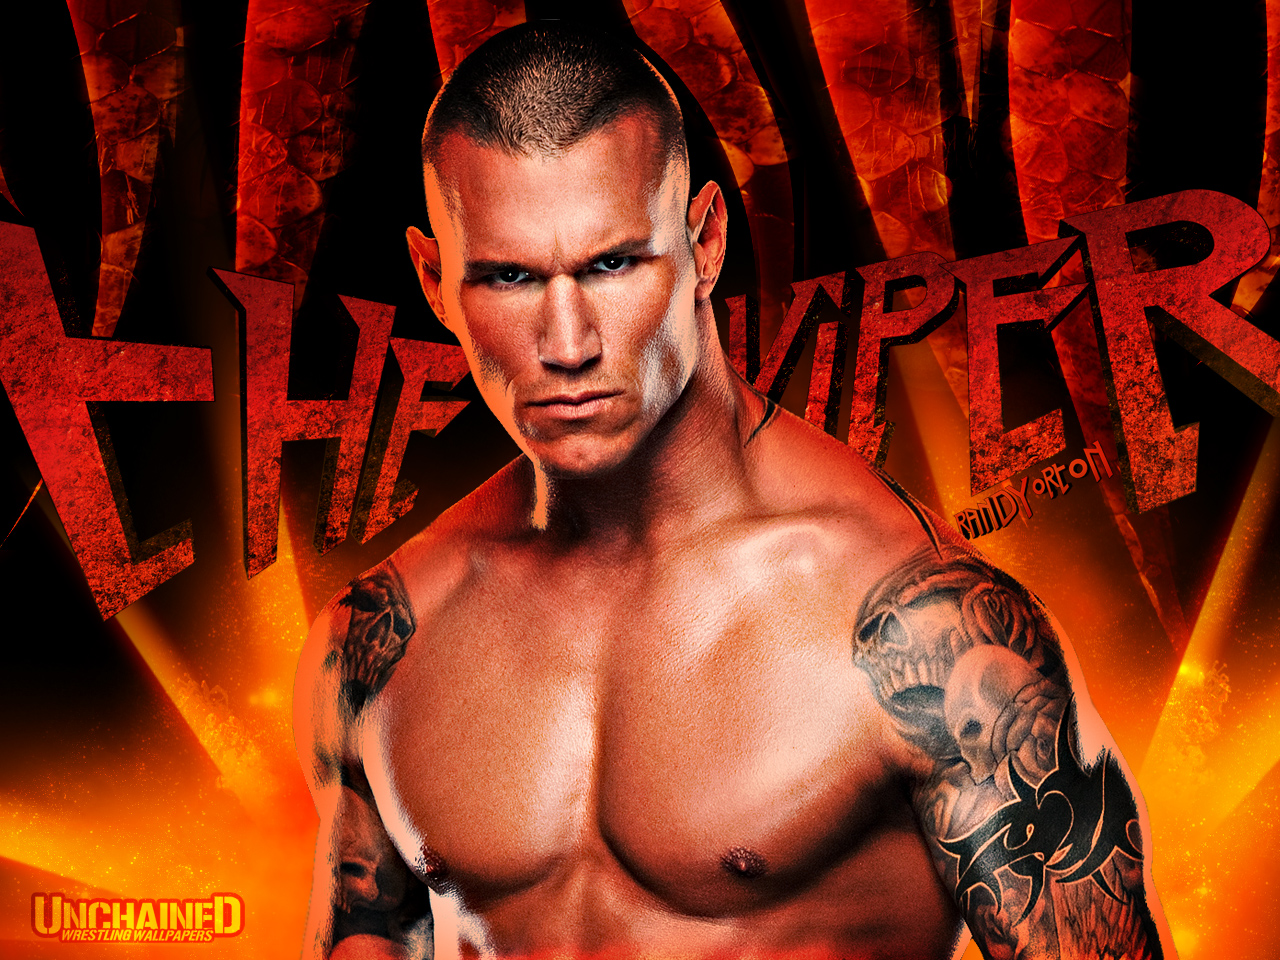 Randy orton wwe superstar cool and amazing pics 2012 for Cool wwe pictures